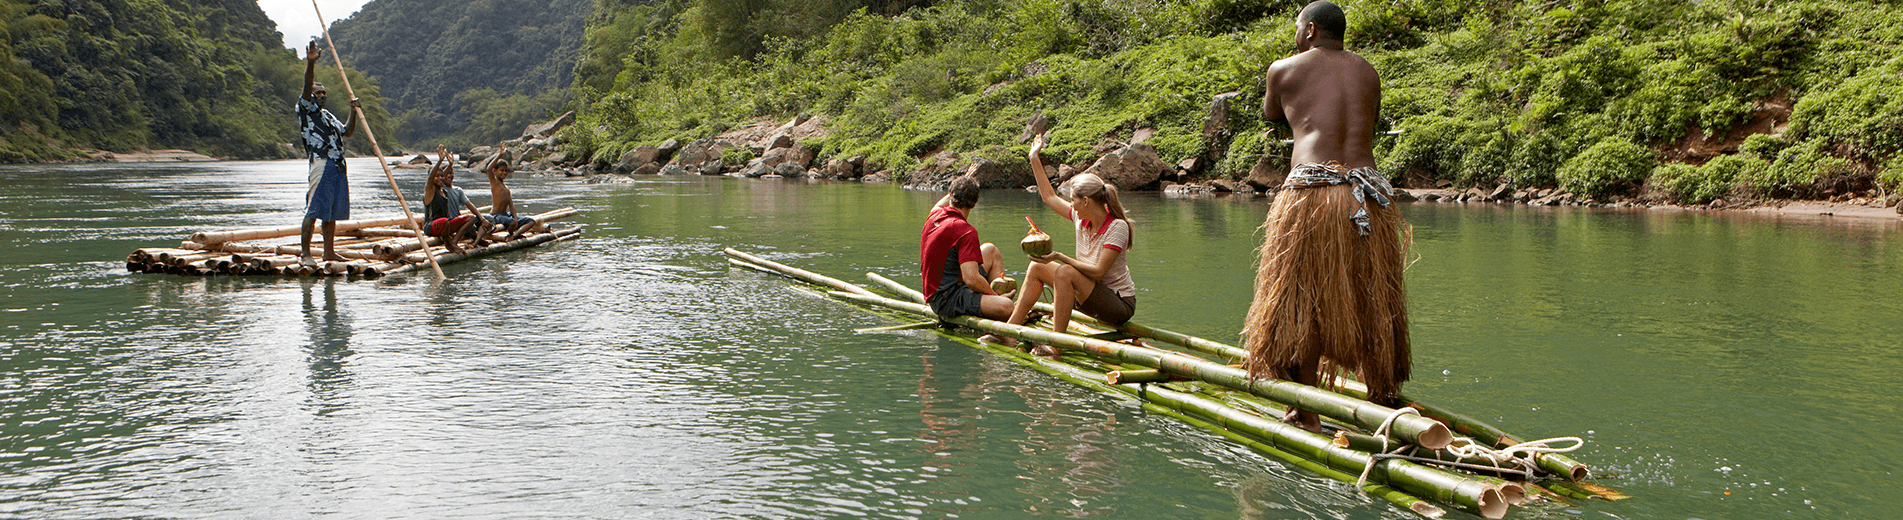 Enjoy a relaxing trip down the Navua River on an authentic Bilibili raft with the Raiwaqa Village tribesmen as they share the beauty of Fiji's enriching culture.